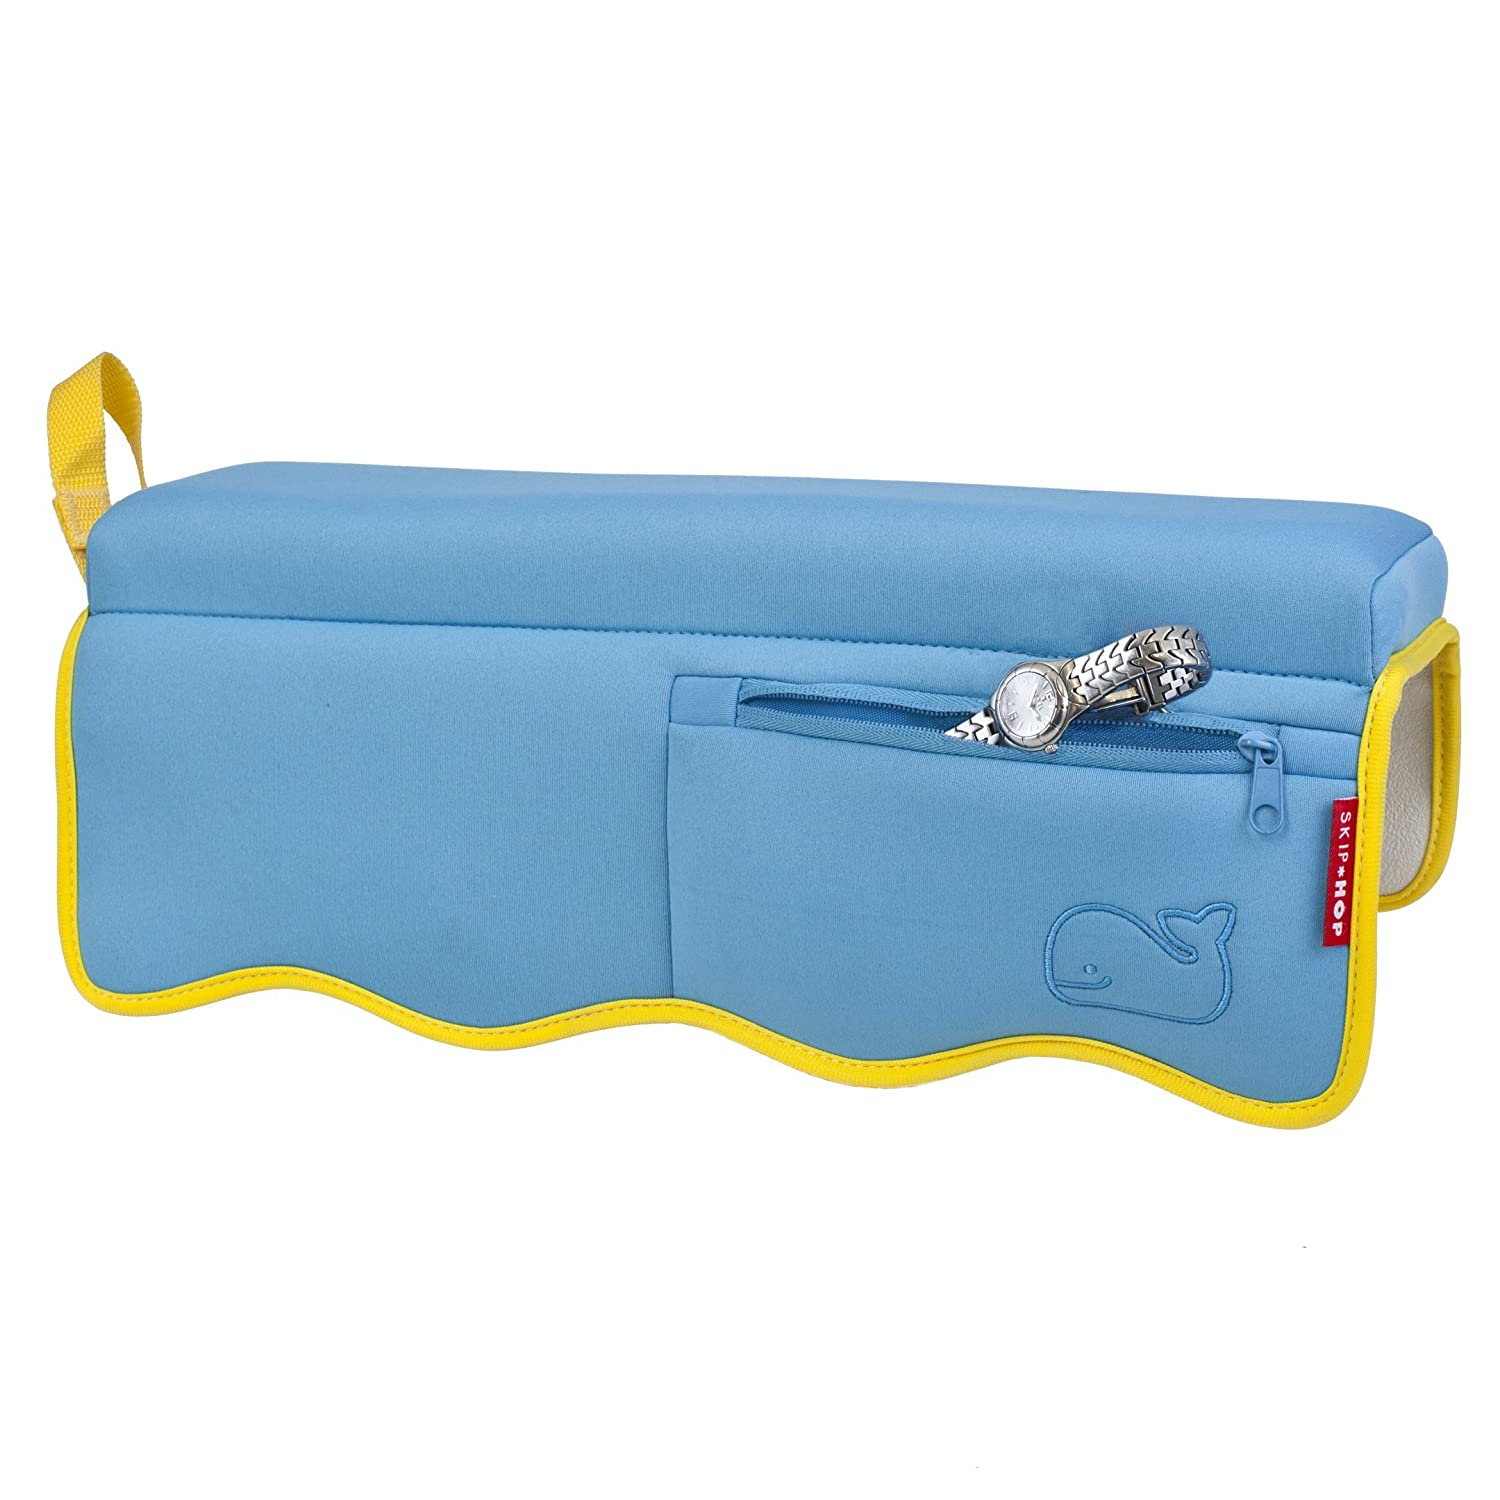 Amazon.com : Skip Hop Moby Baby Bath Elbow Rest, Blue : Bathtub Side ...